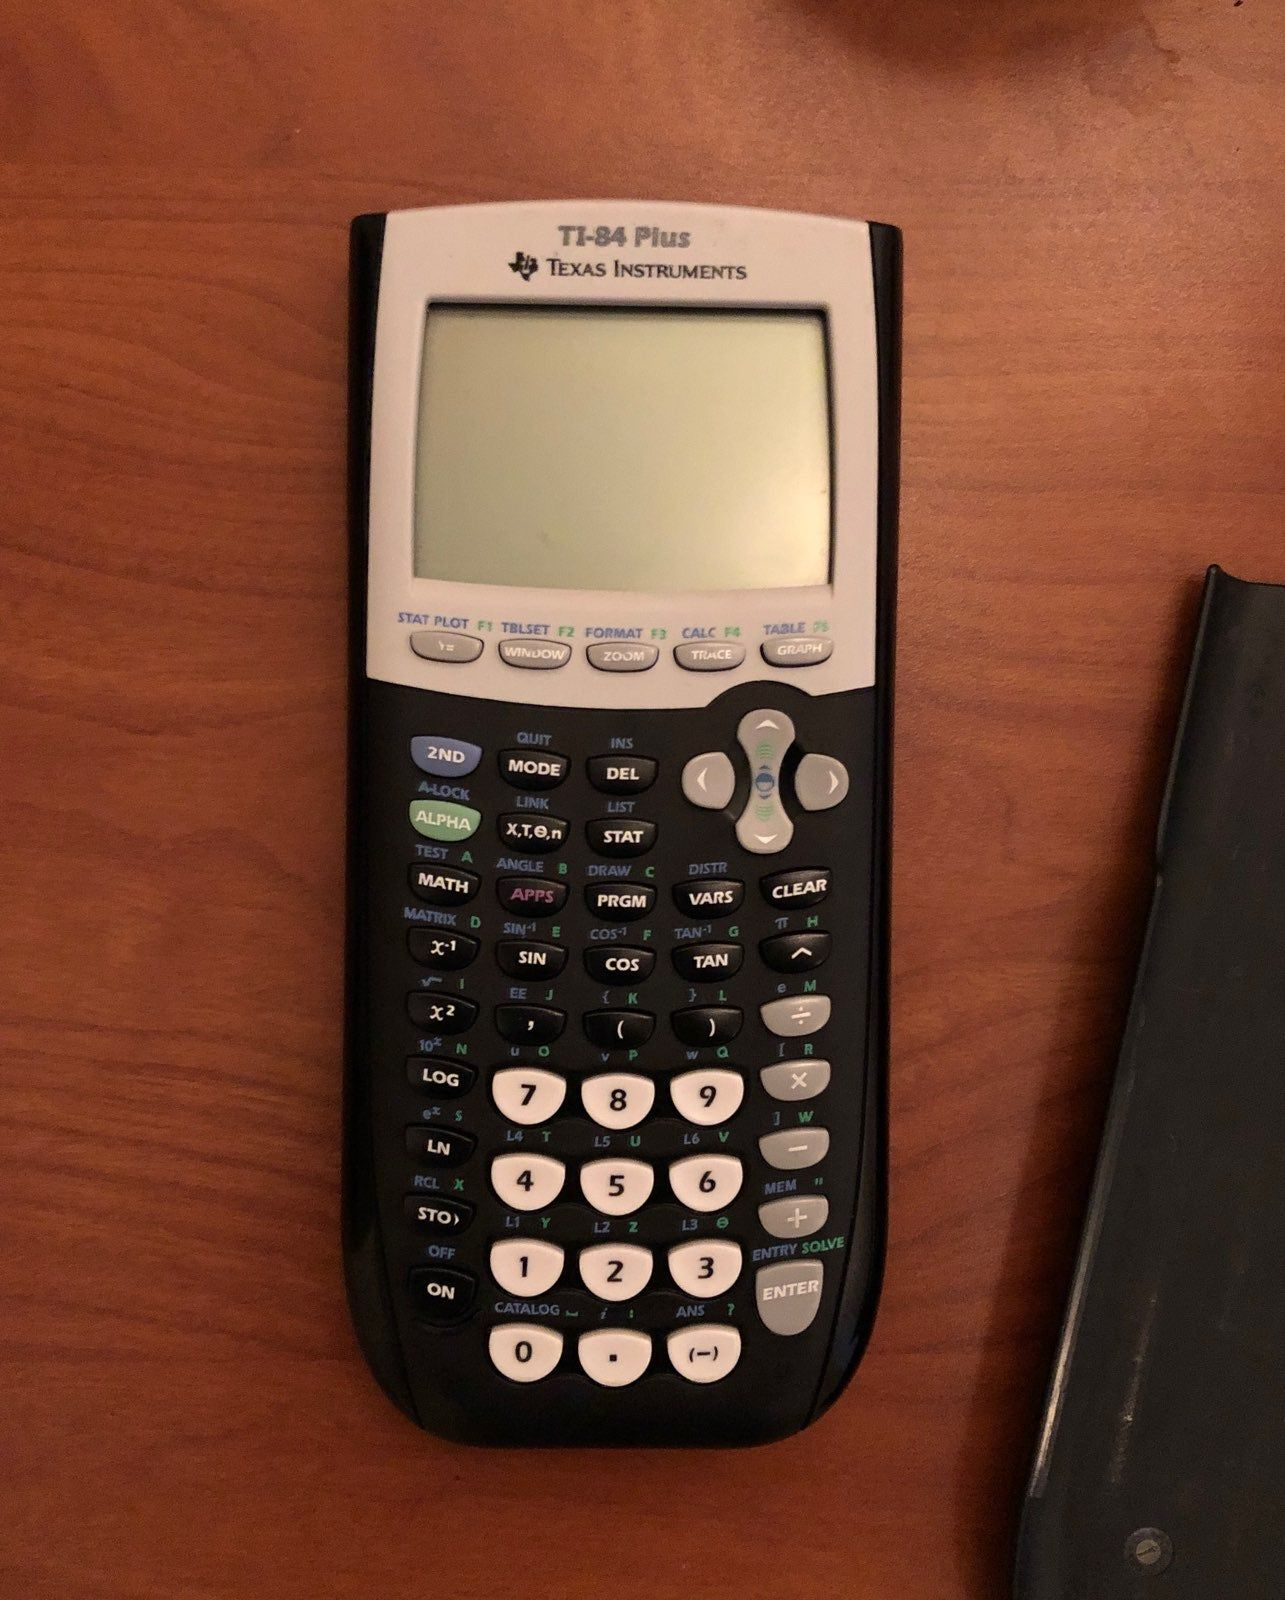 Brand New Ti 84 Plus Calculator Comes With Cover Comes With Batteries Works Perfect Feel Free To Throw Offers Calculator Math Apps Sin Cos Tan